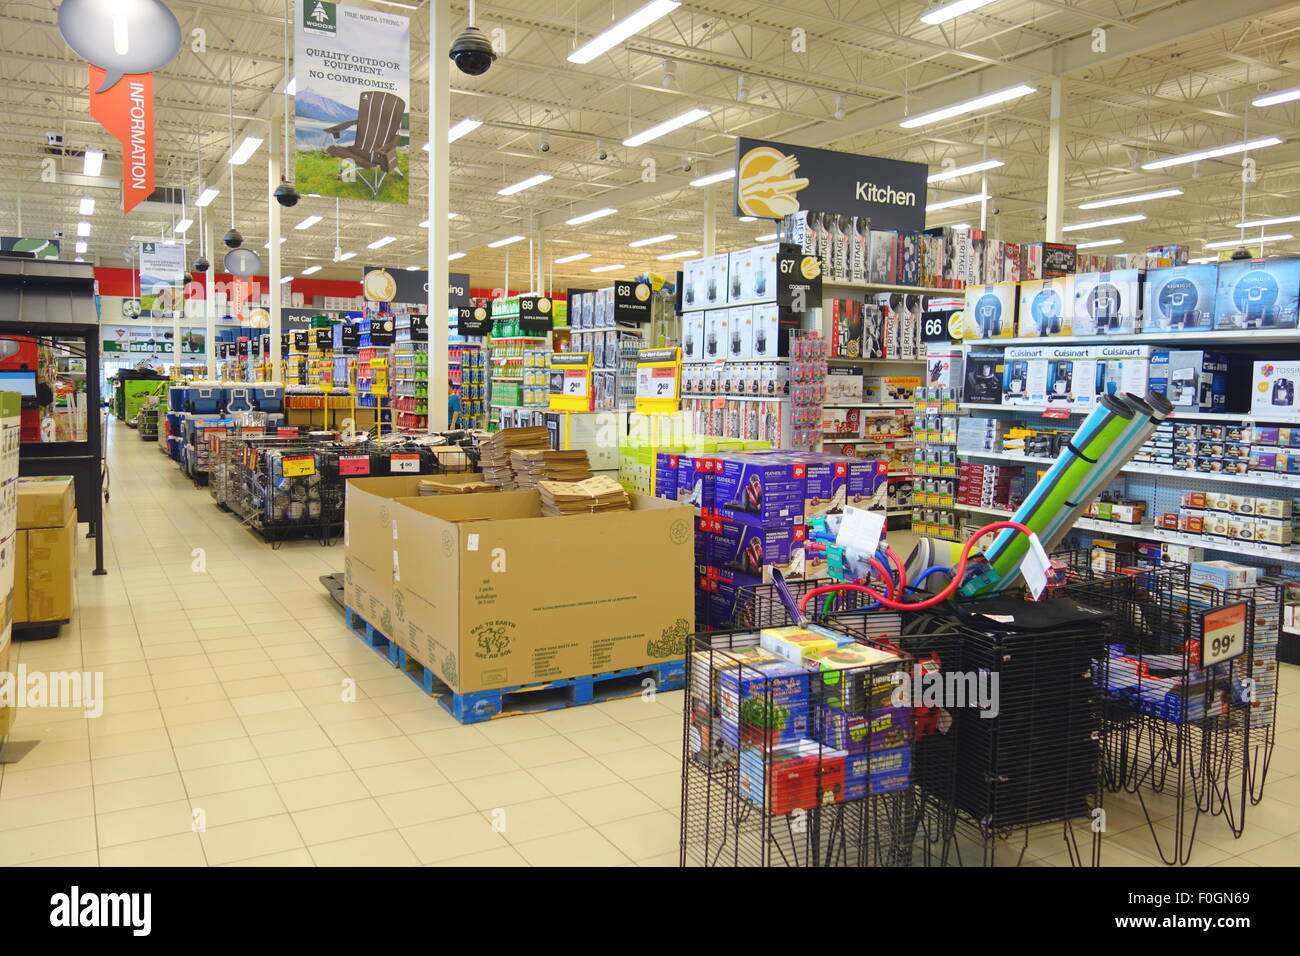 Canadian tire store in Toronto, Canada Stock Photo: 86419713 - Alamy